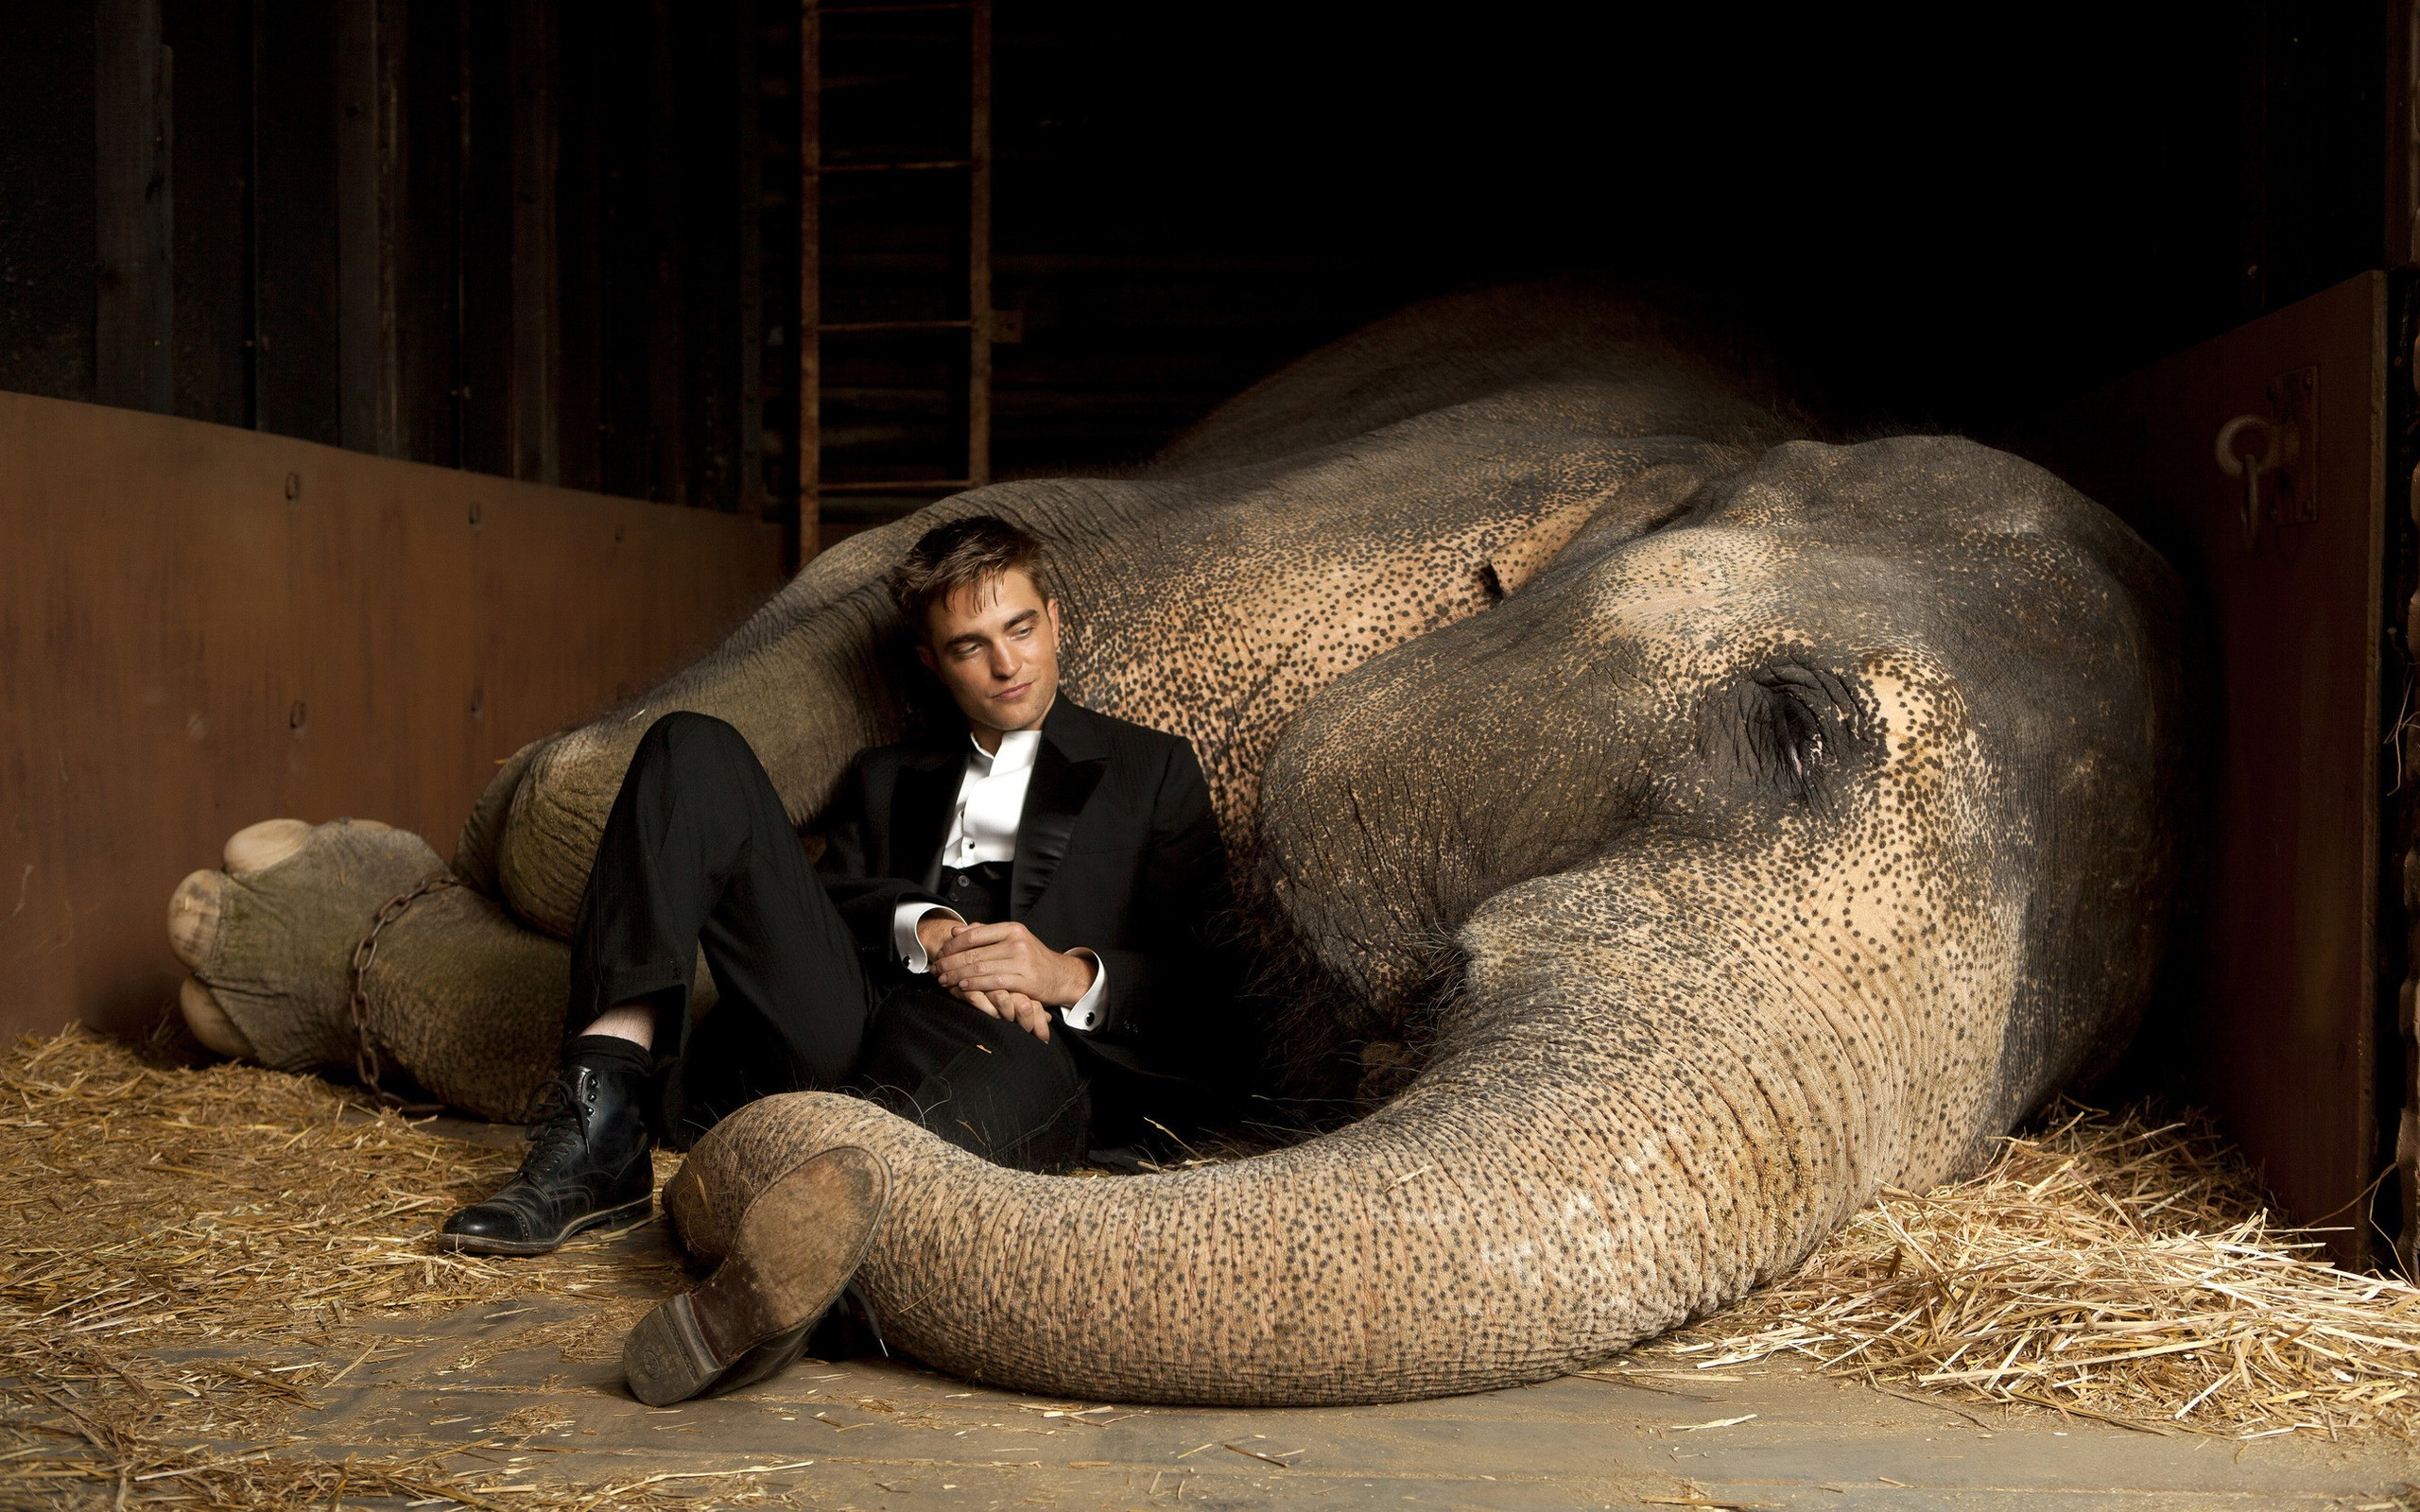 water for elephants elephants HD Wallpaper